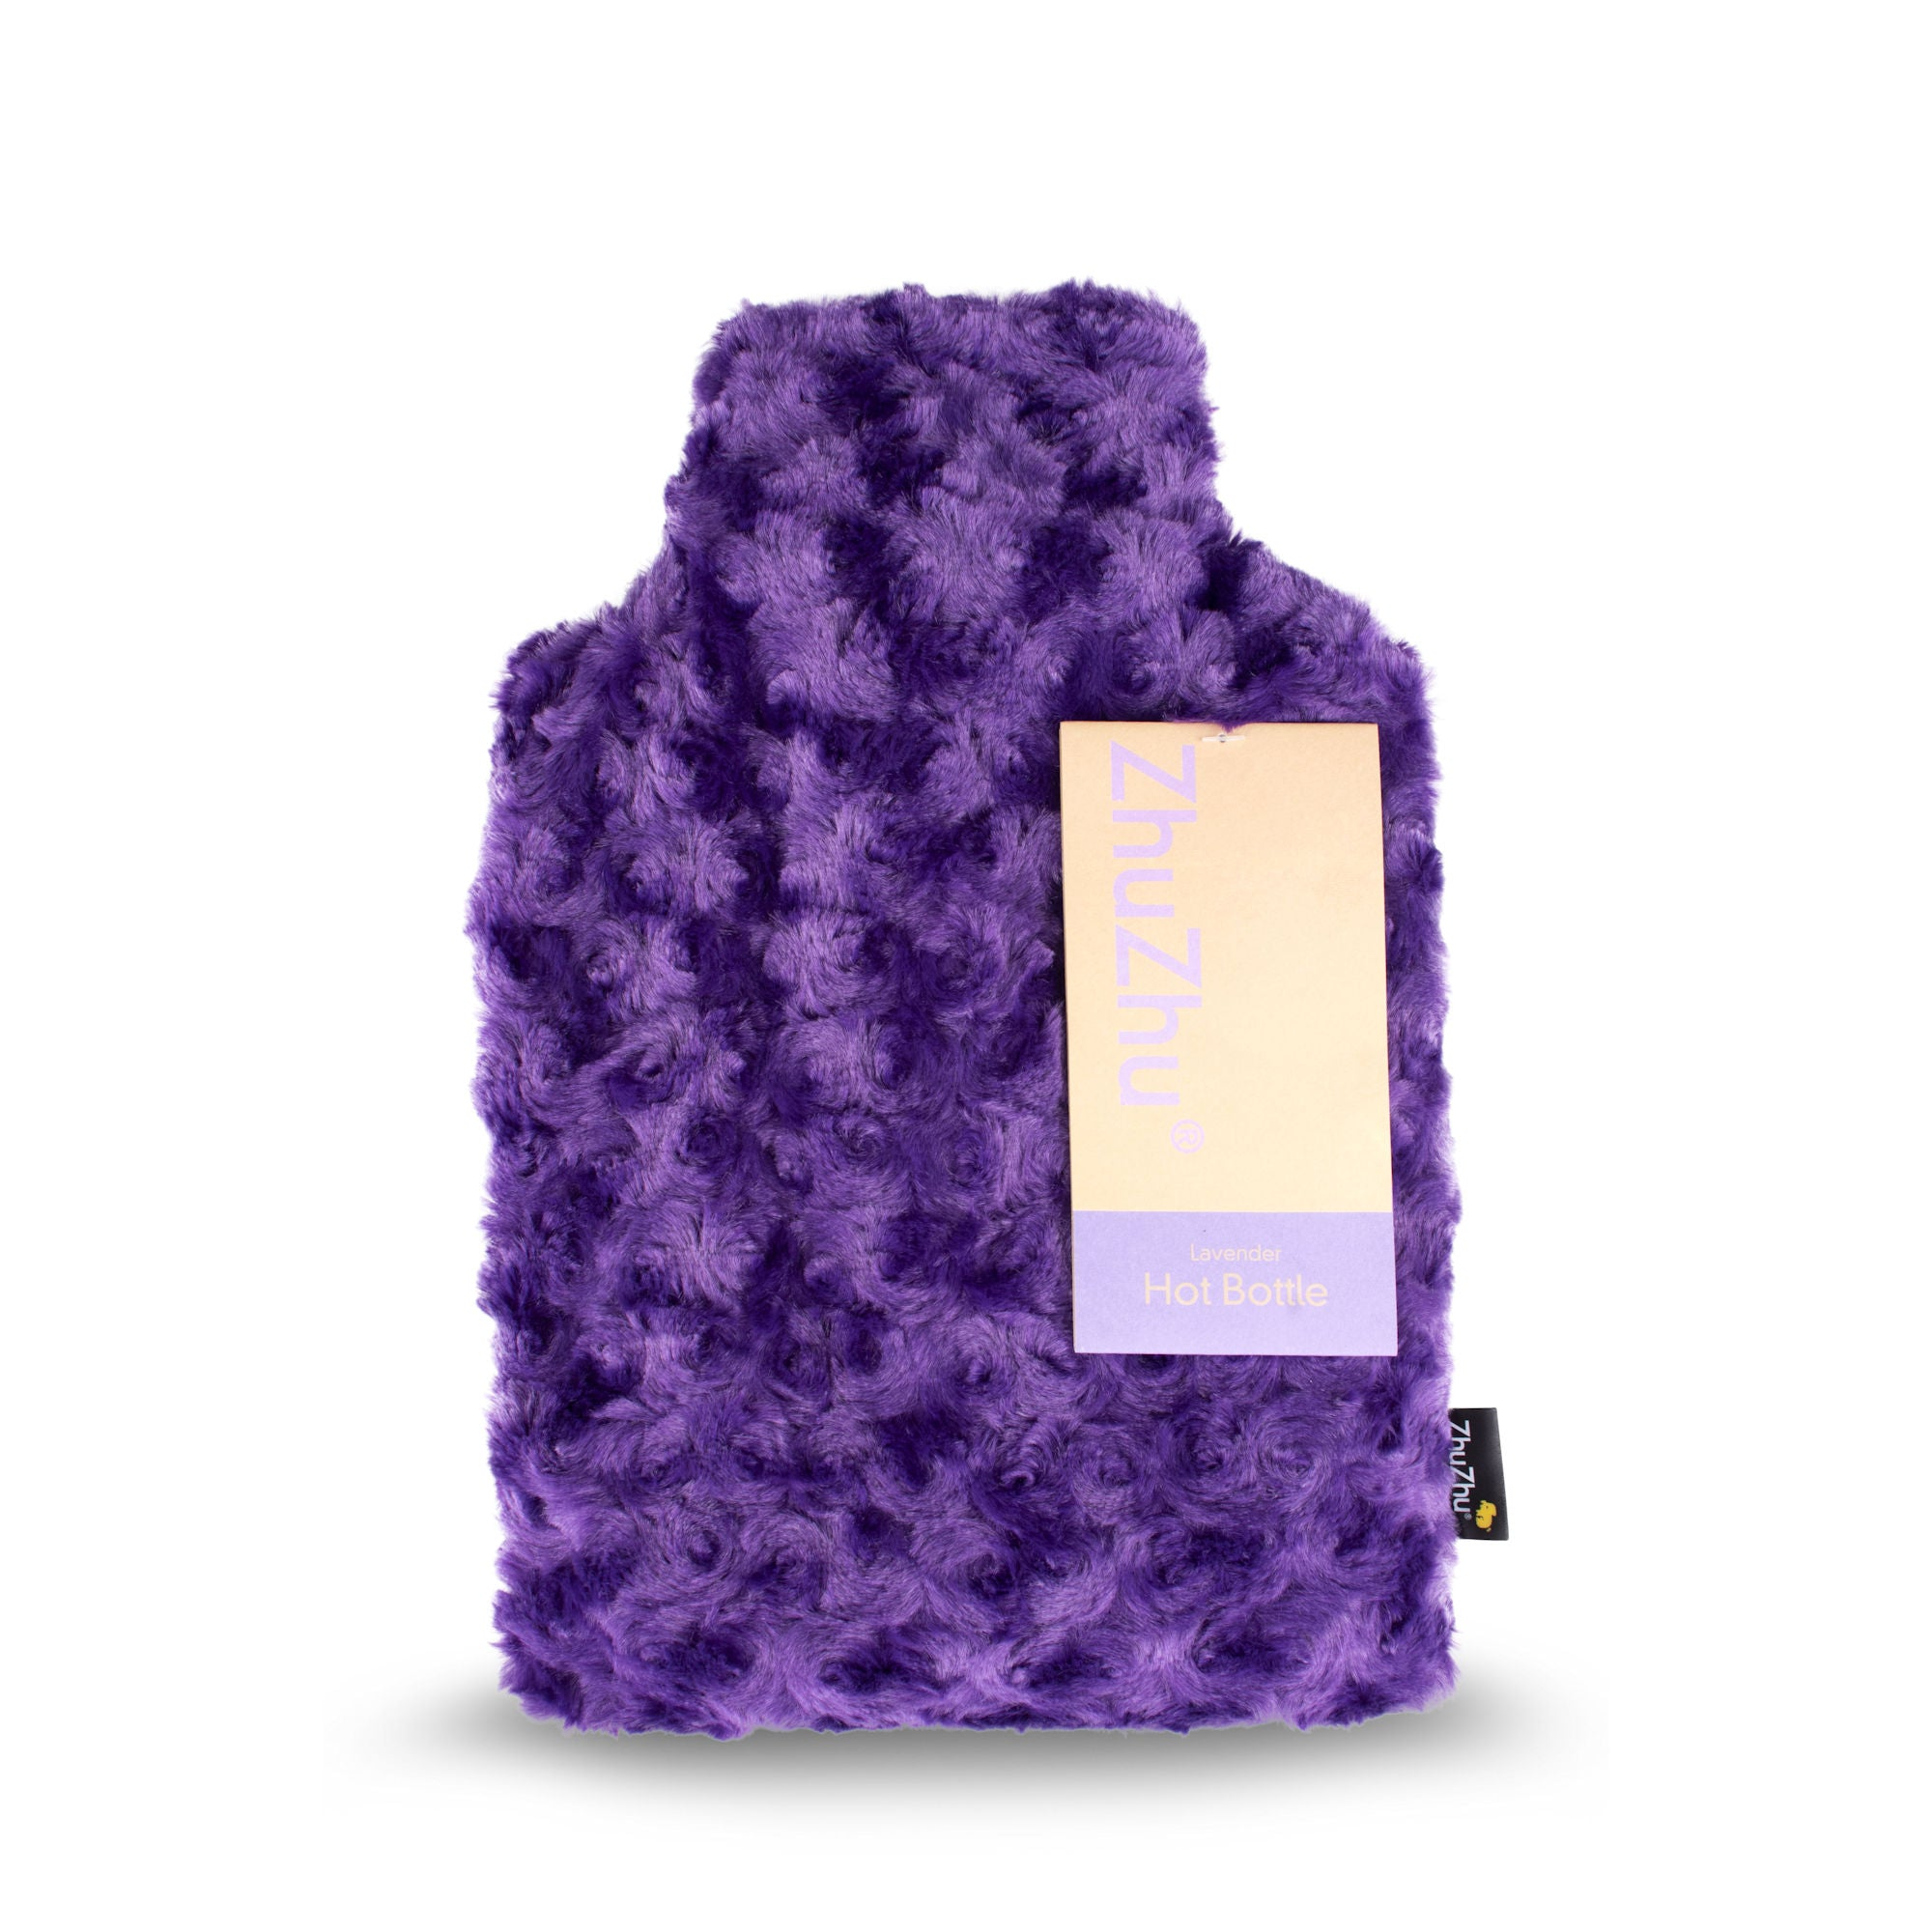 Zhu Zhu Purple Swirl Plush Hot Bottle Body Warmer - Microwavable Lavender Wheat Bag